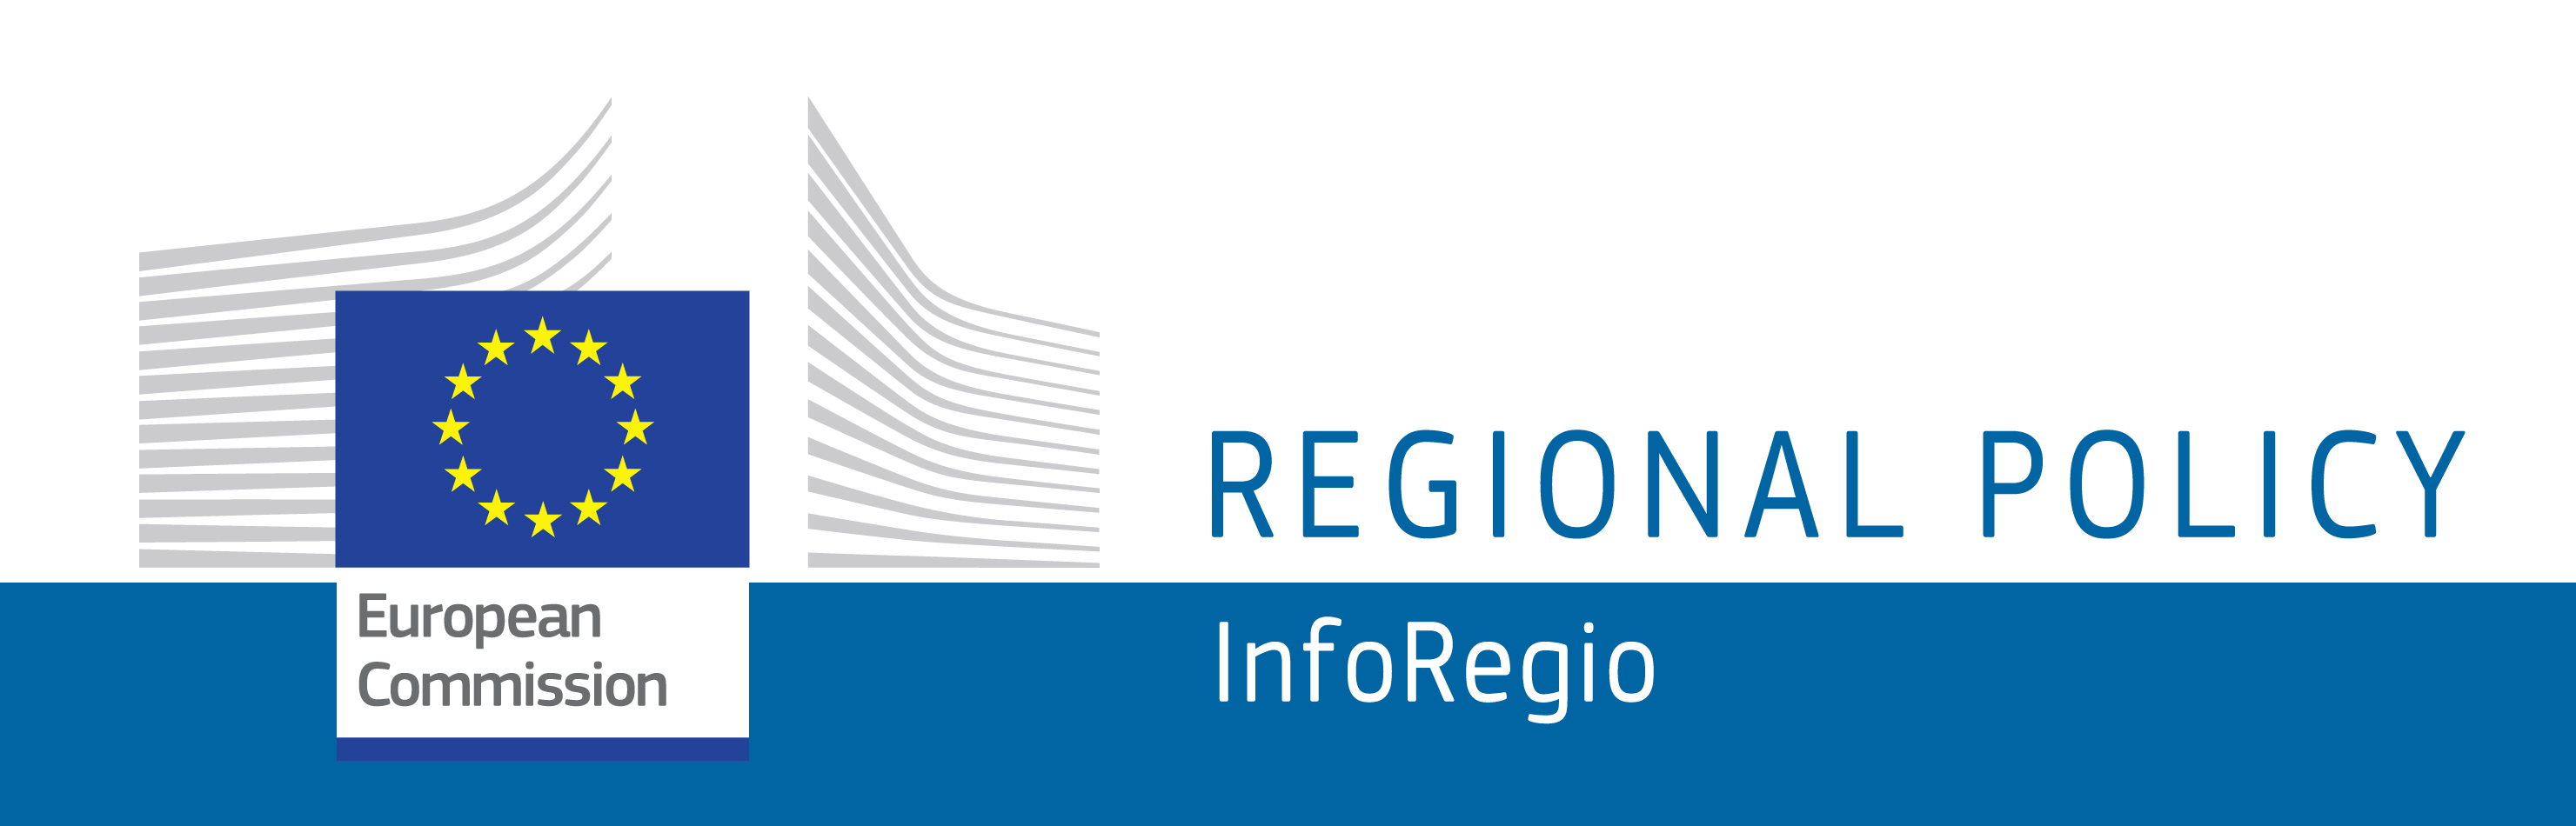 european union regional policy Download citation | european union regio | an examination of the goals and operation of a european union regional policy to address income inequality among member regions.